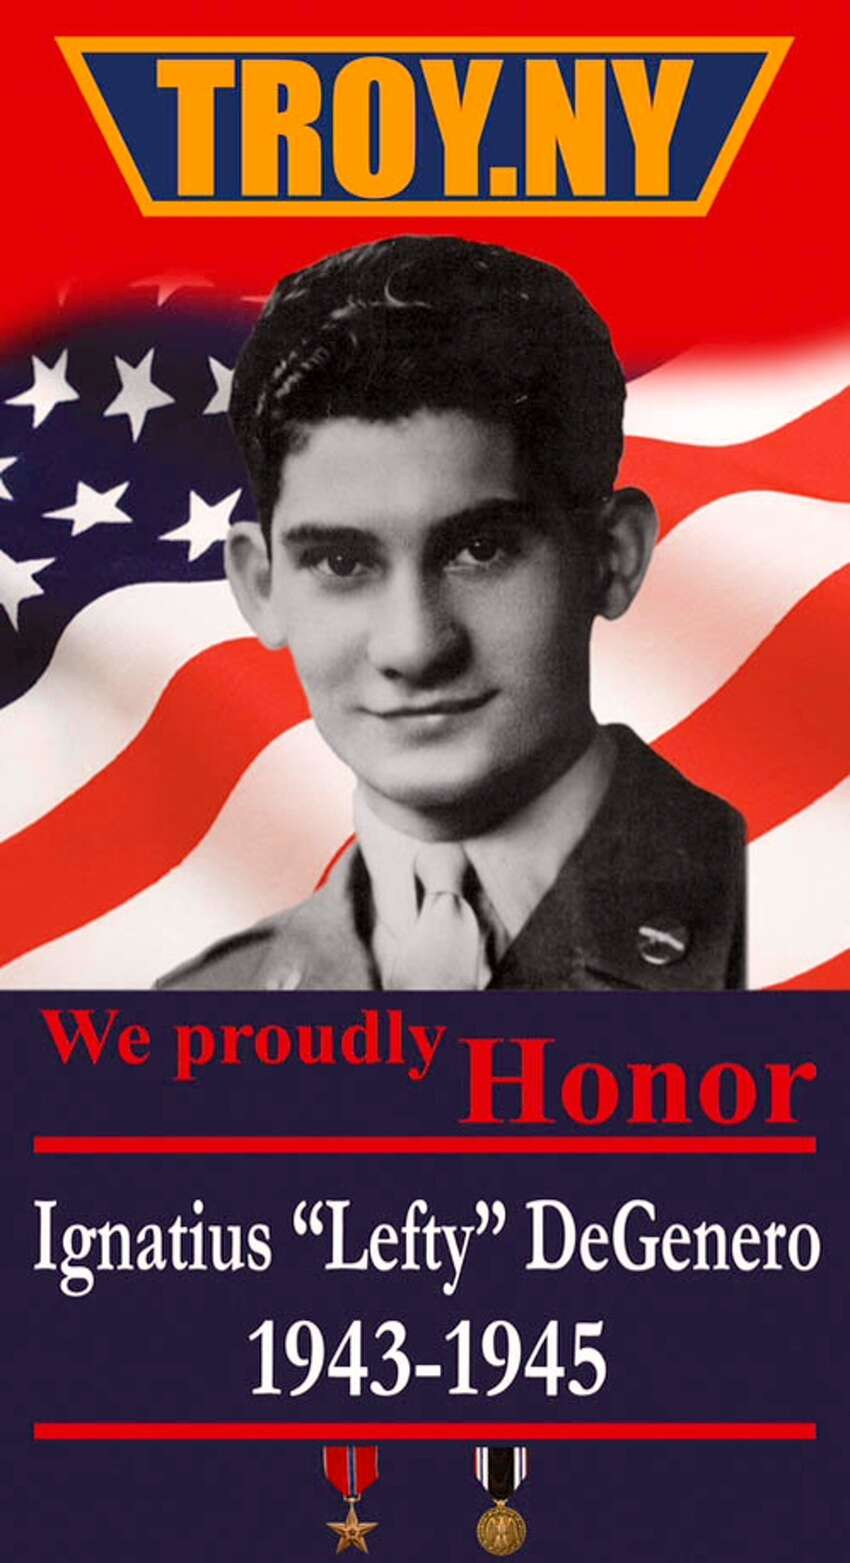 A banner honoring WWII vet and former POW Ignatius